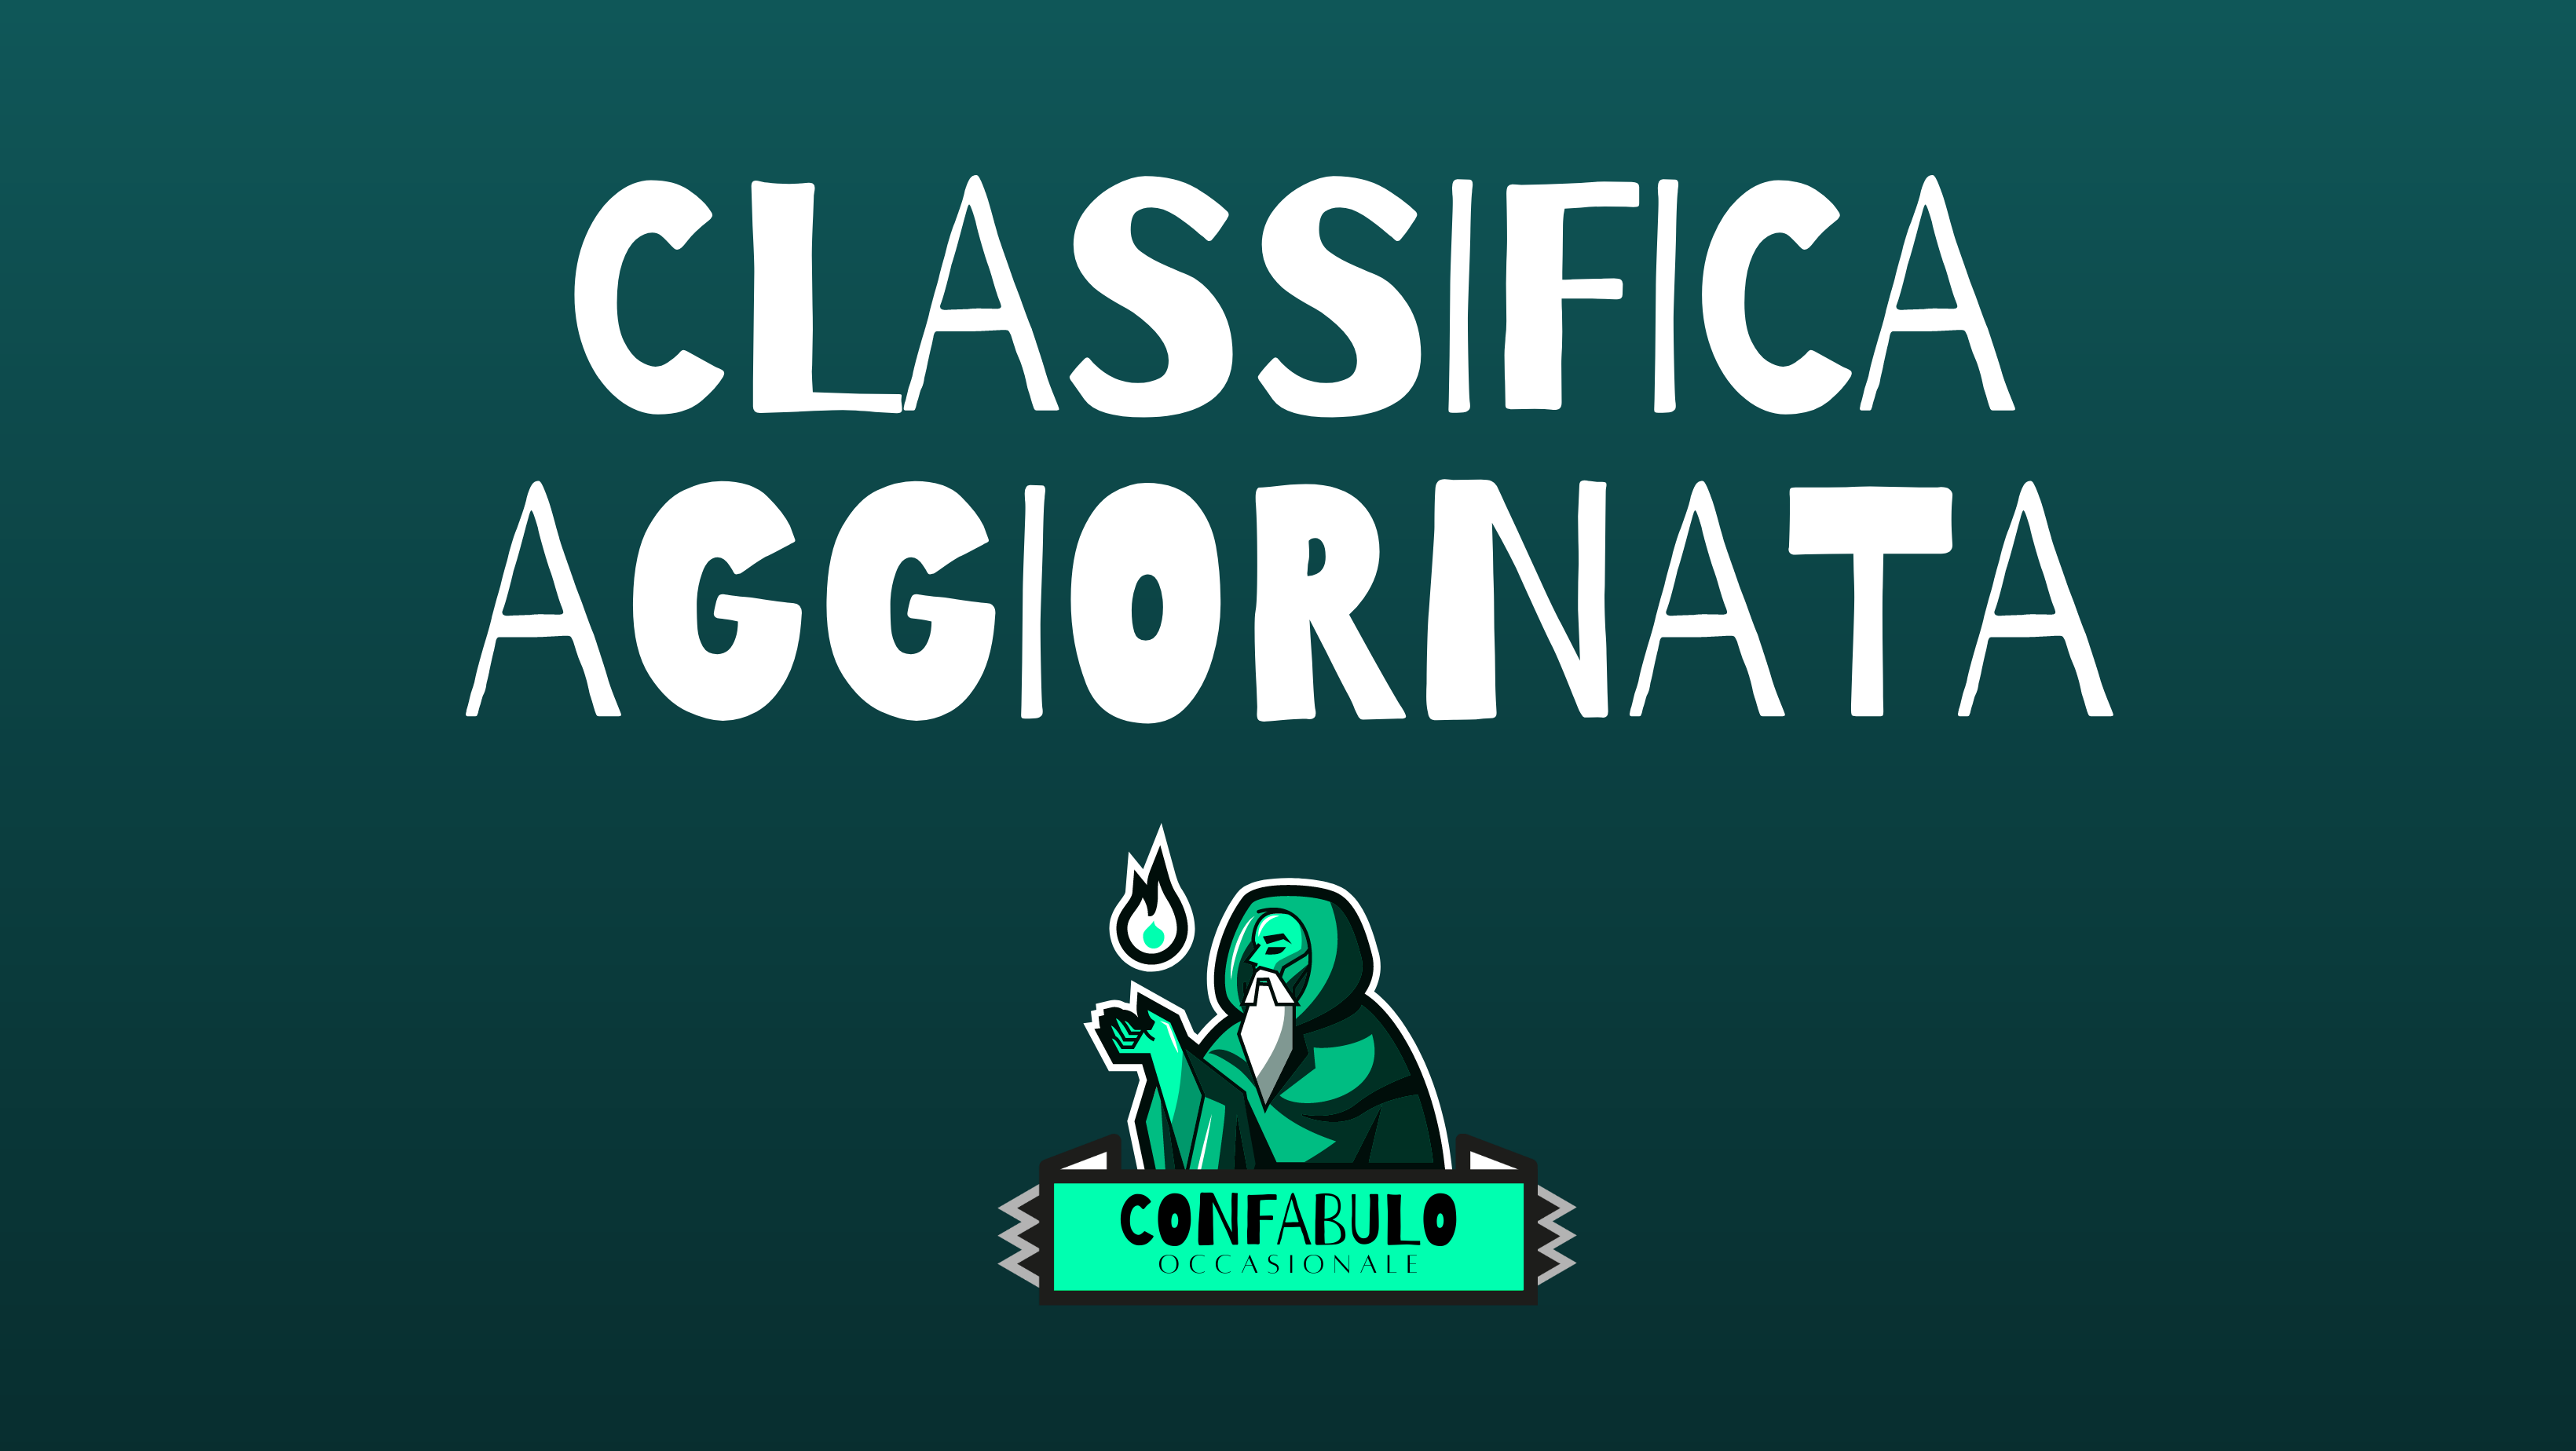 Confabulo Occasionale G1G5